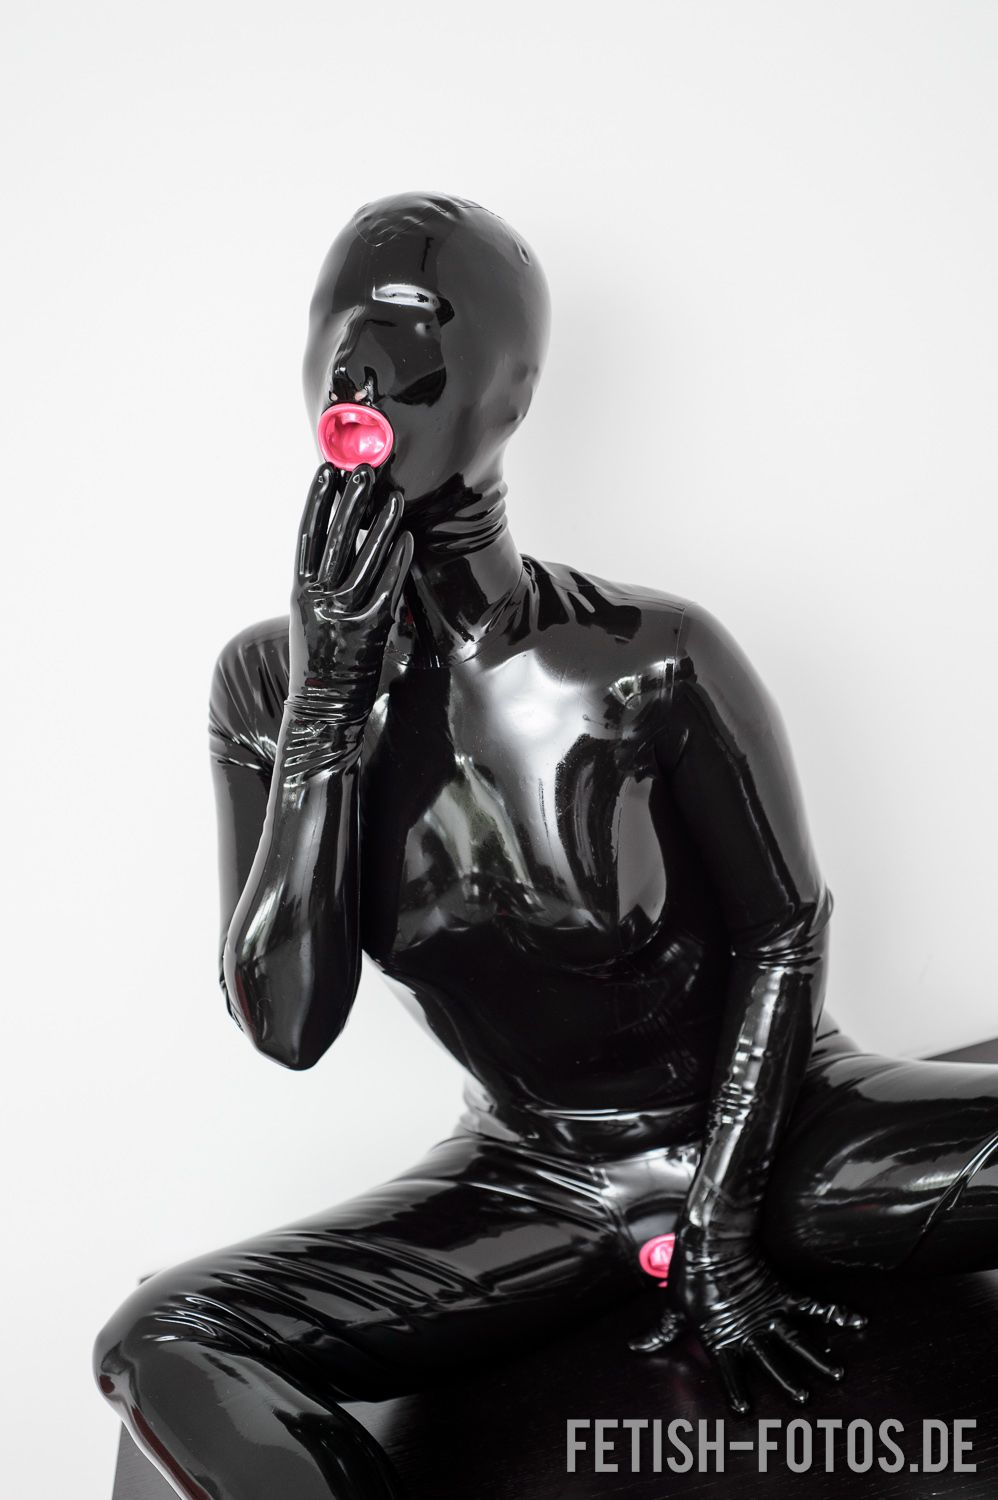 Remarkable, latex fetish gloves free 943 share